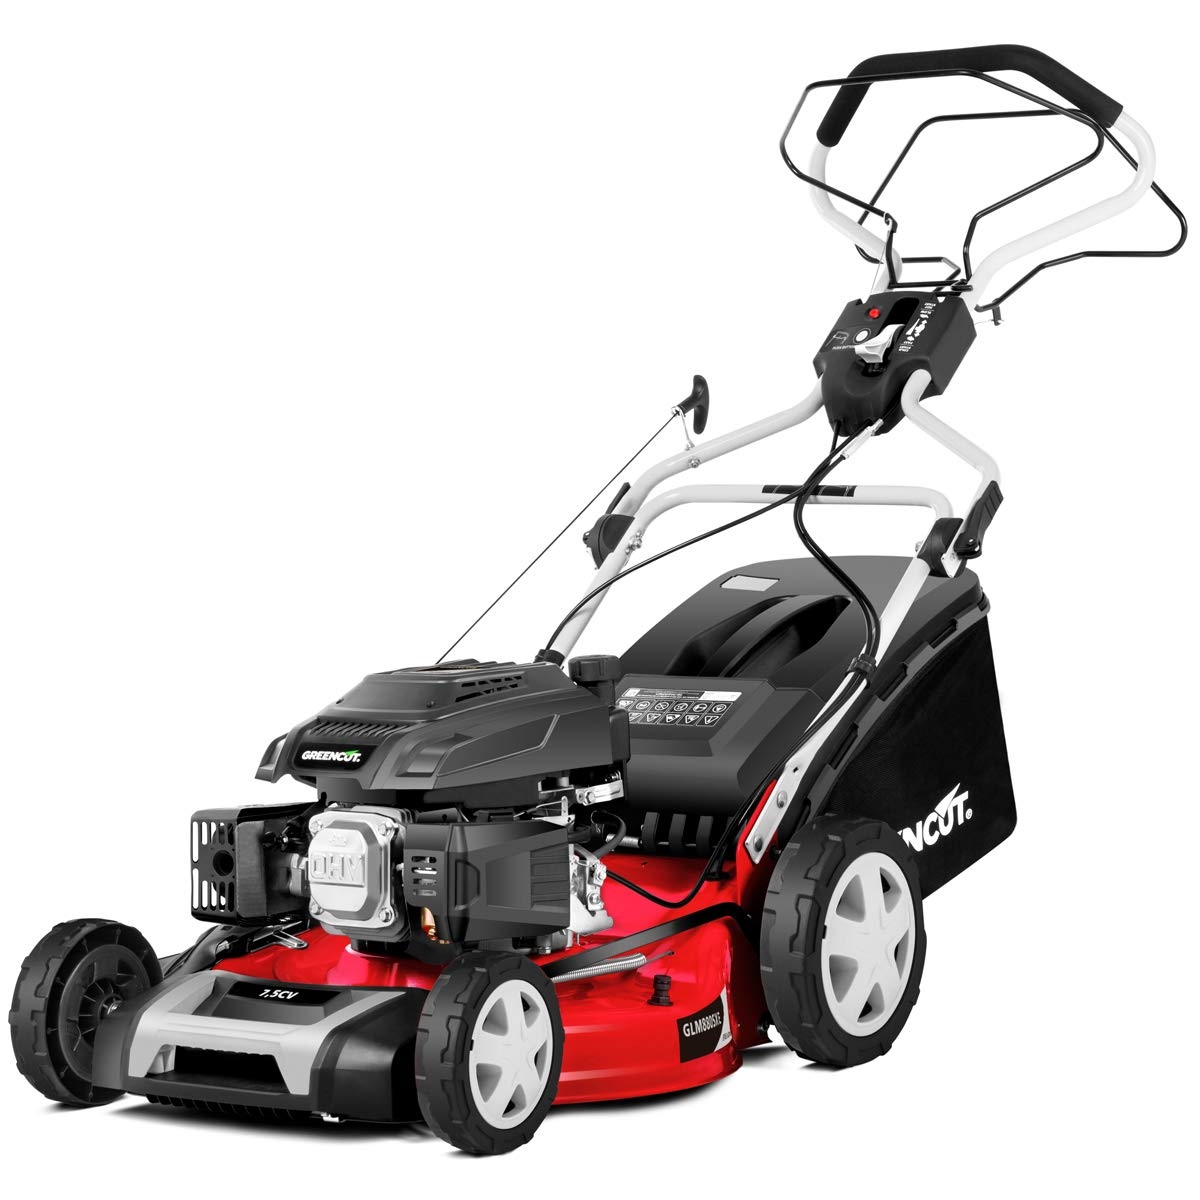 Greencut GLM680SX - Cortacésped con tracción manual con motor de gasolina de 139cc y 5cv y arranque manual Easy-start, con un ancho de corte de 407mm ...